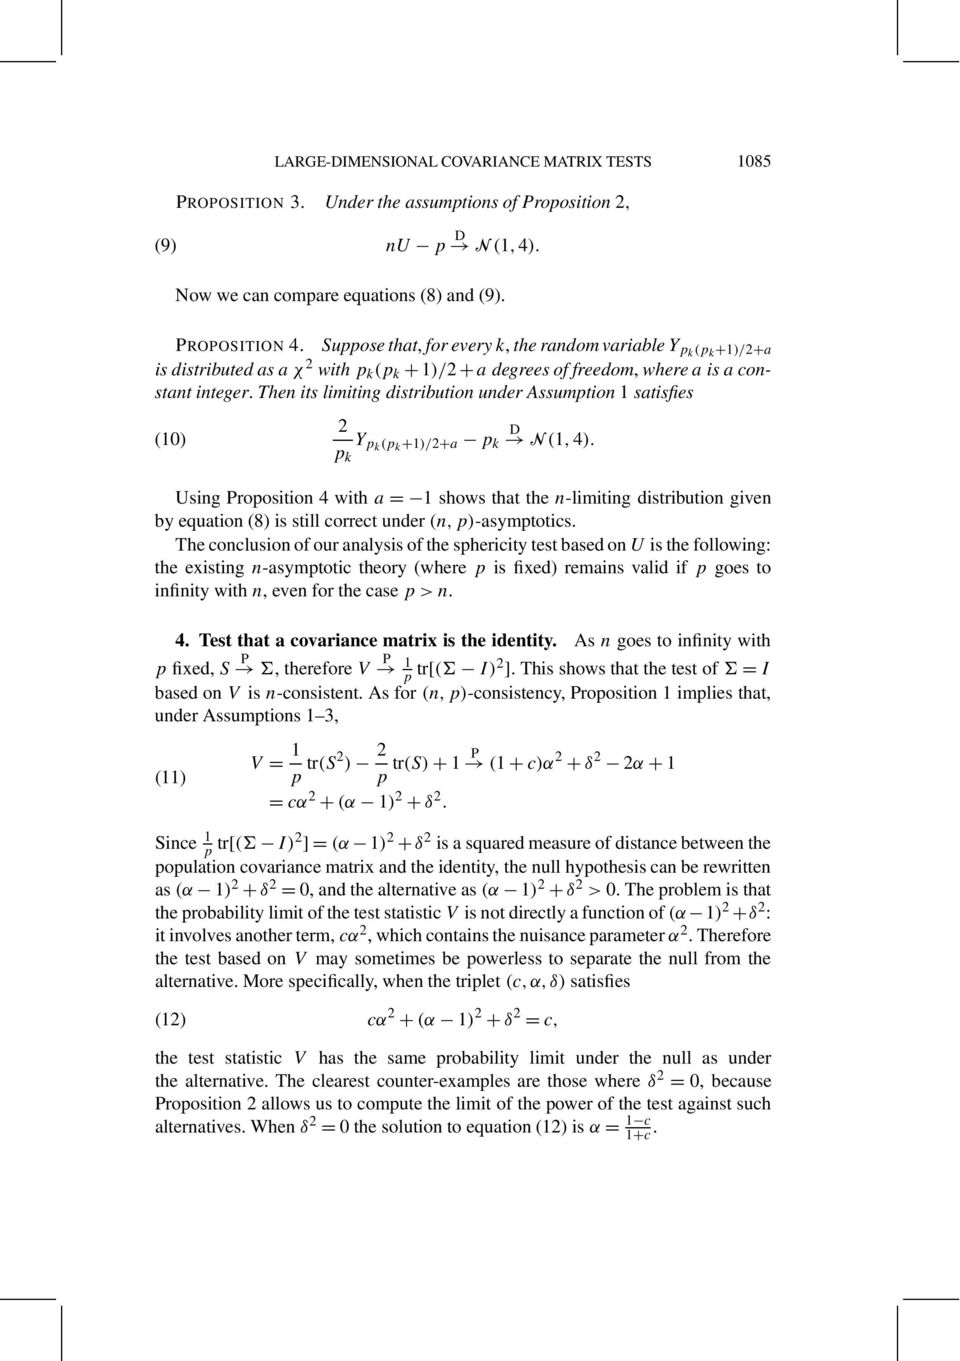 The its limitig distributio uder Assumptio 1 satisfies 10) 2 p k Y pk p k +1)/2+a p k D N 1, 4).